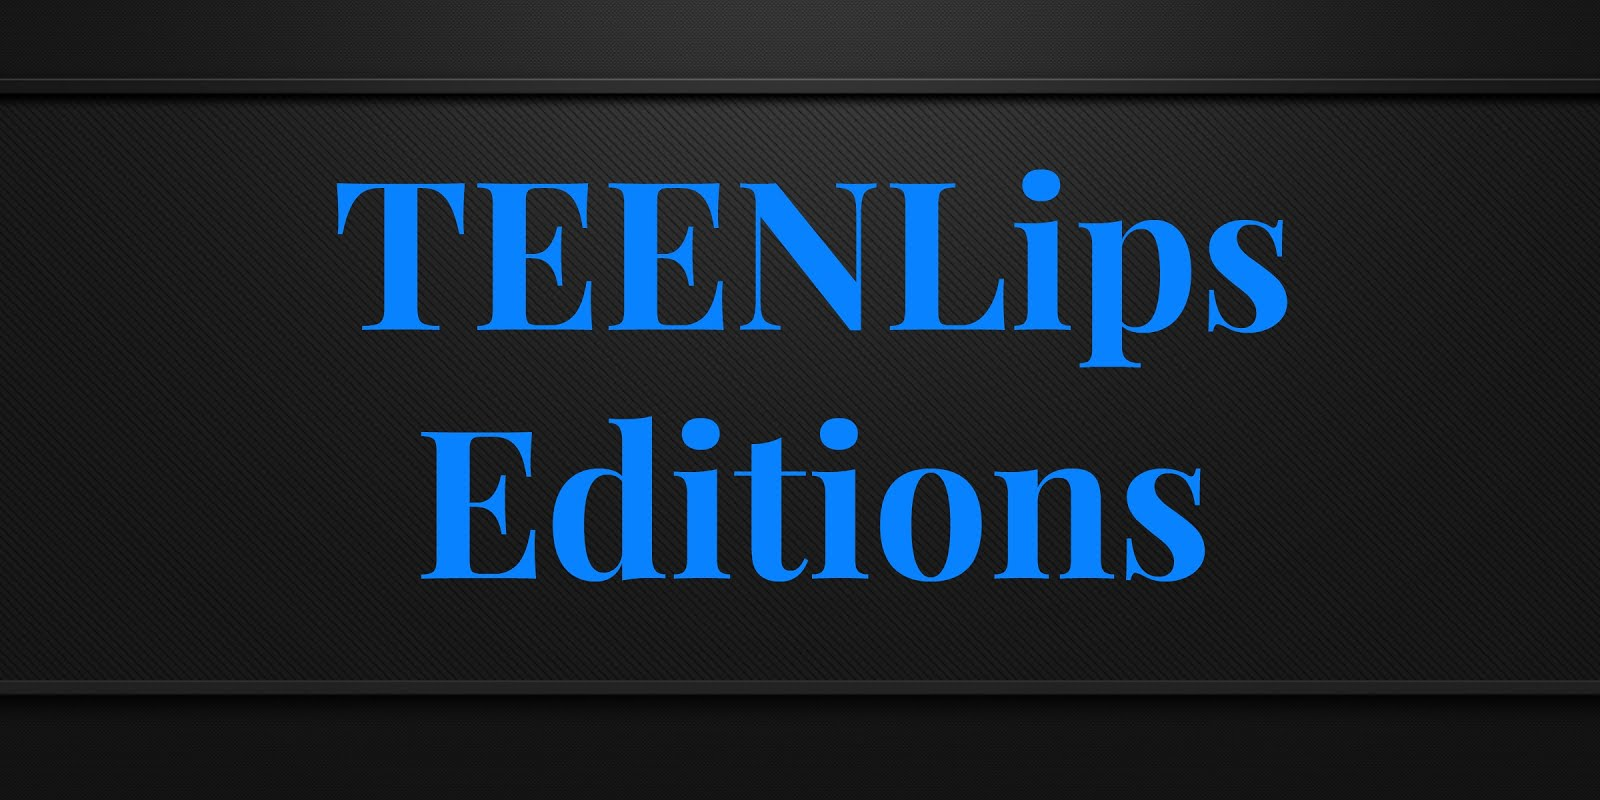 Service Presse TeenLips Editions